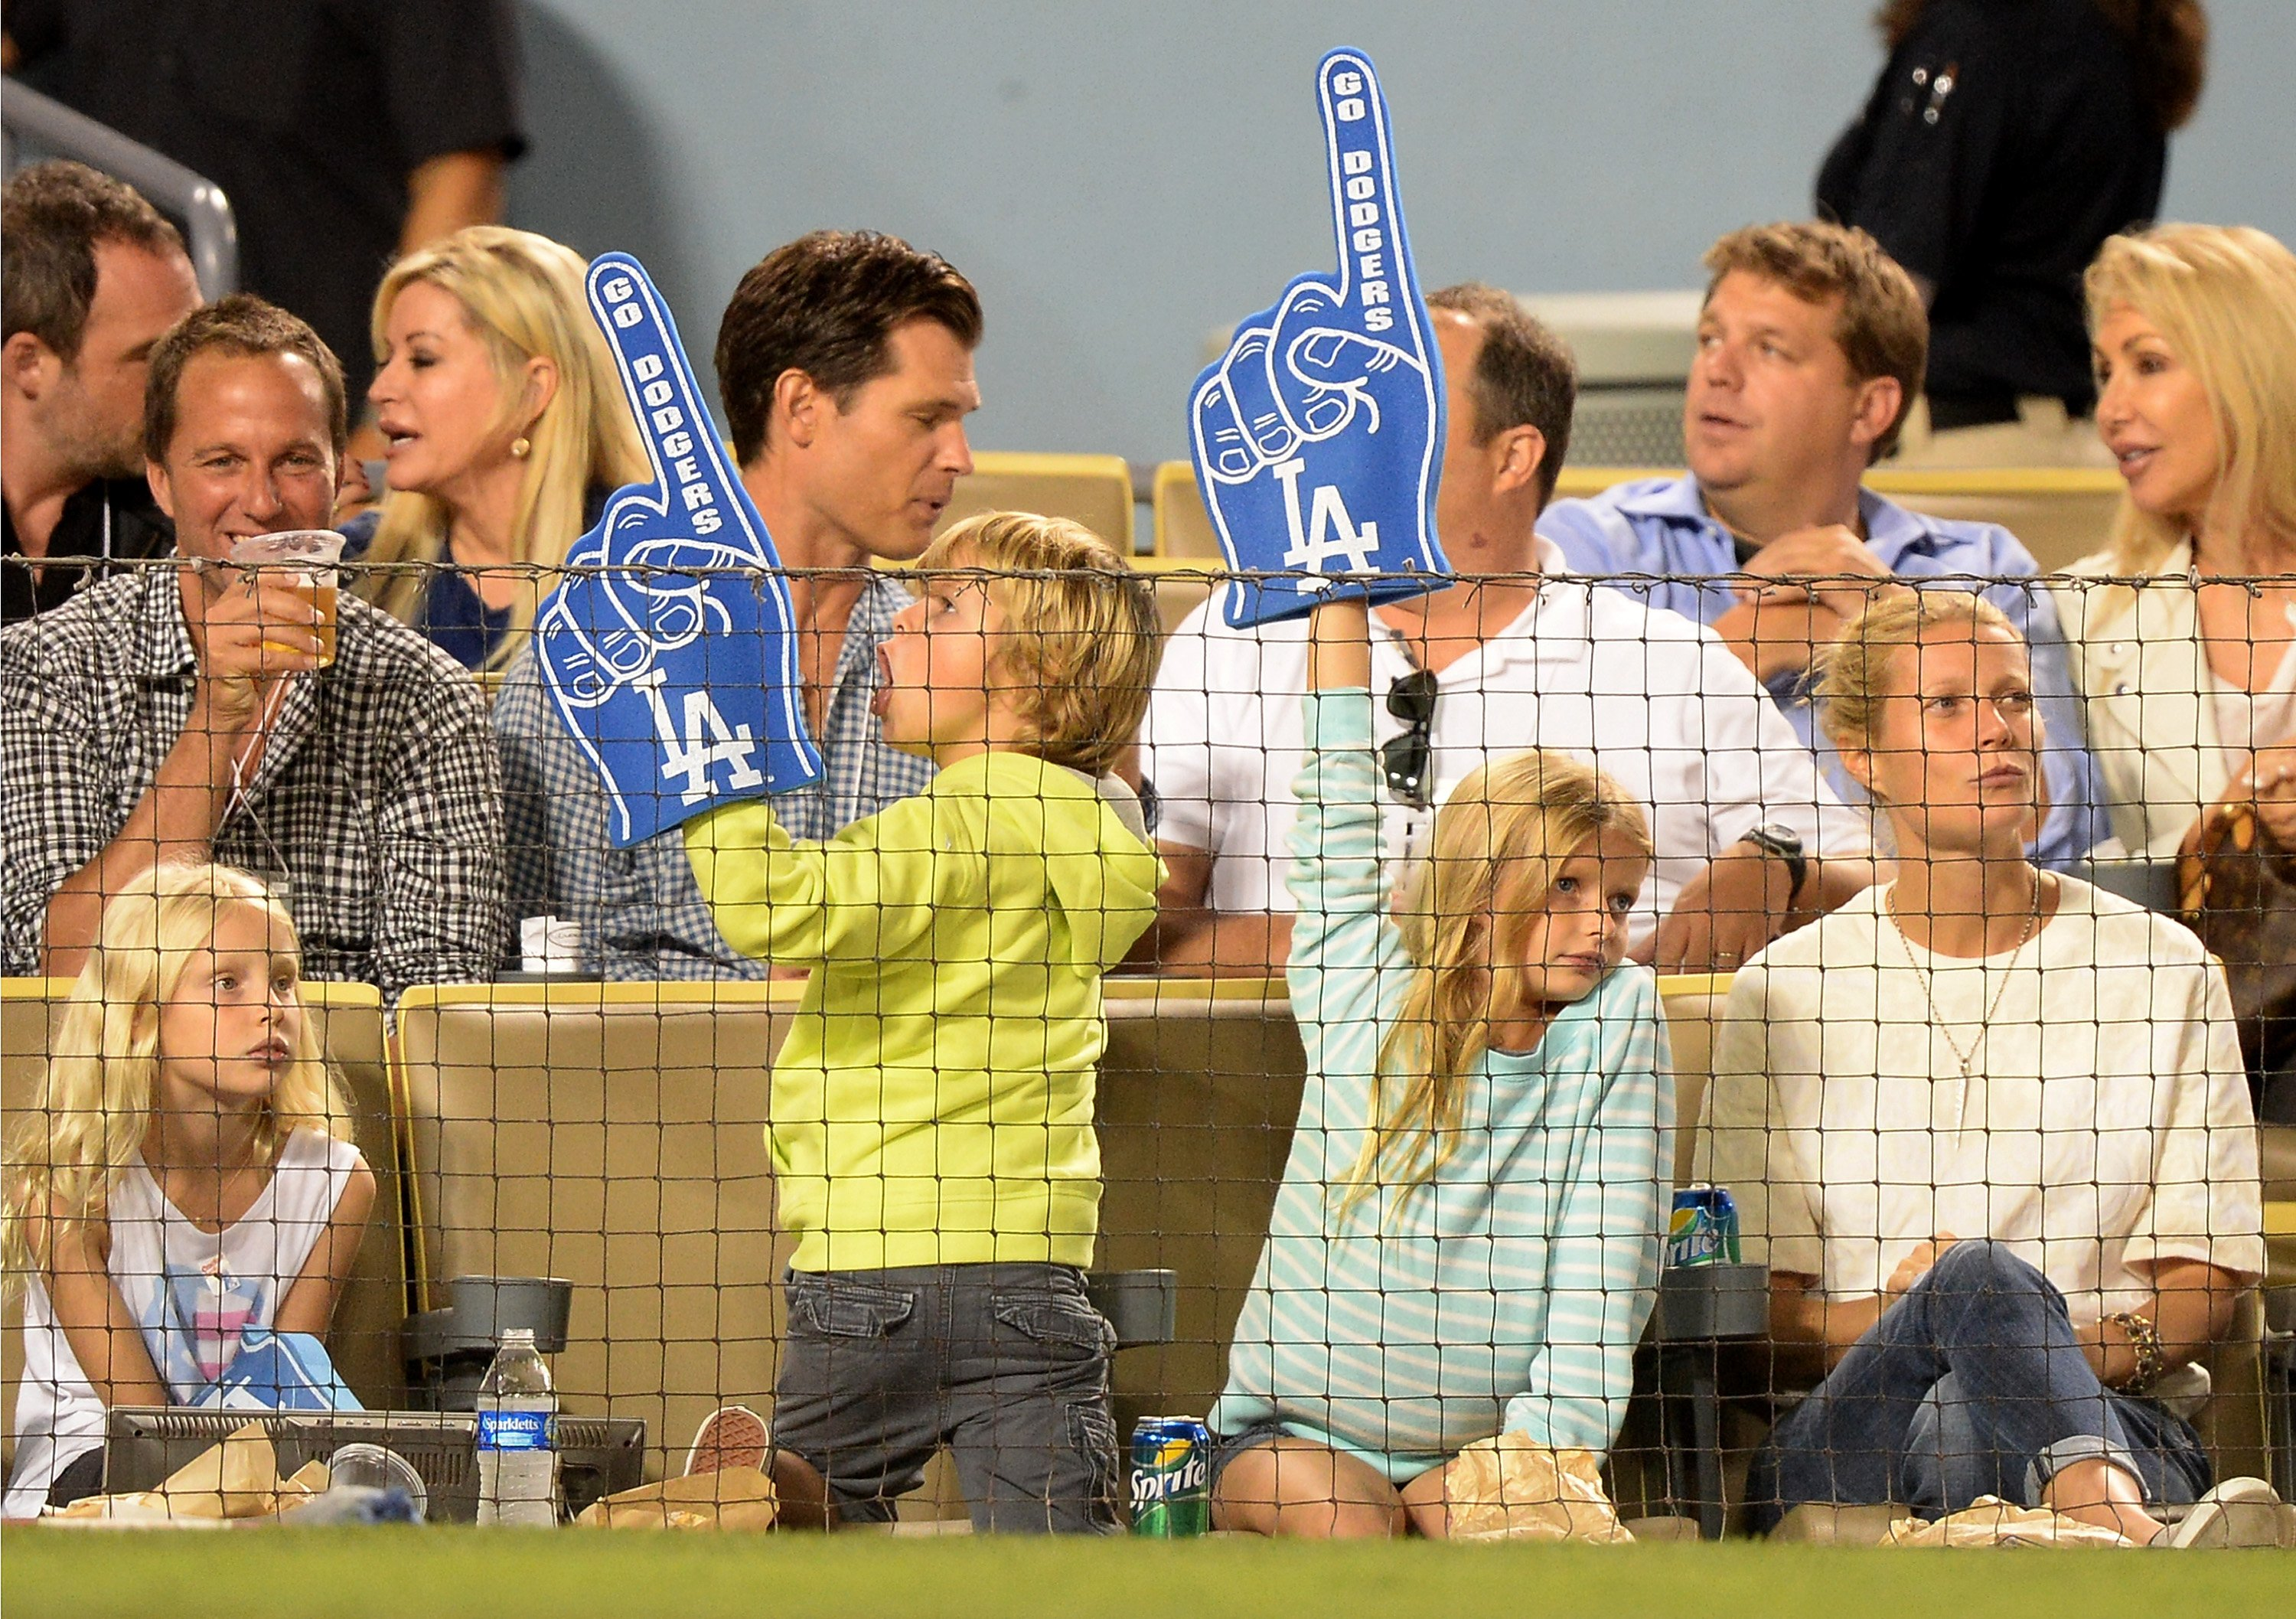 Image Credits: Getty Images / Harry How | Actress Gwyneth Paltrow (R) and Moses Martin and Apple Martin watch the game between the Arizona Diamondbacks and the Los Angeles Dodgers at Dodger Stadium on September 11, 2013 in Los Angeles, California.